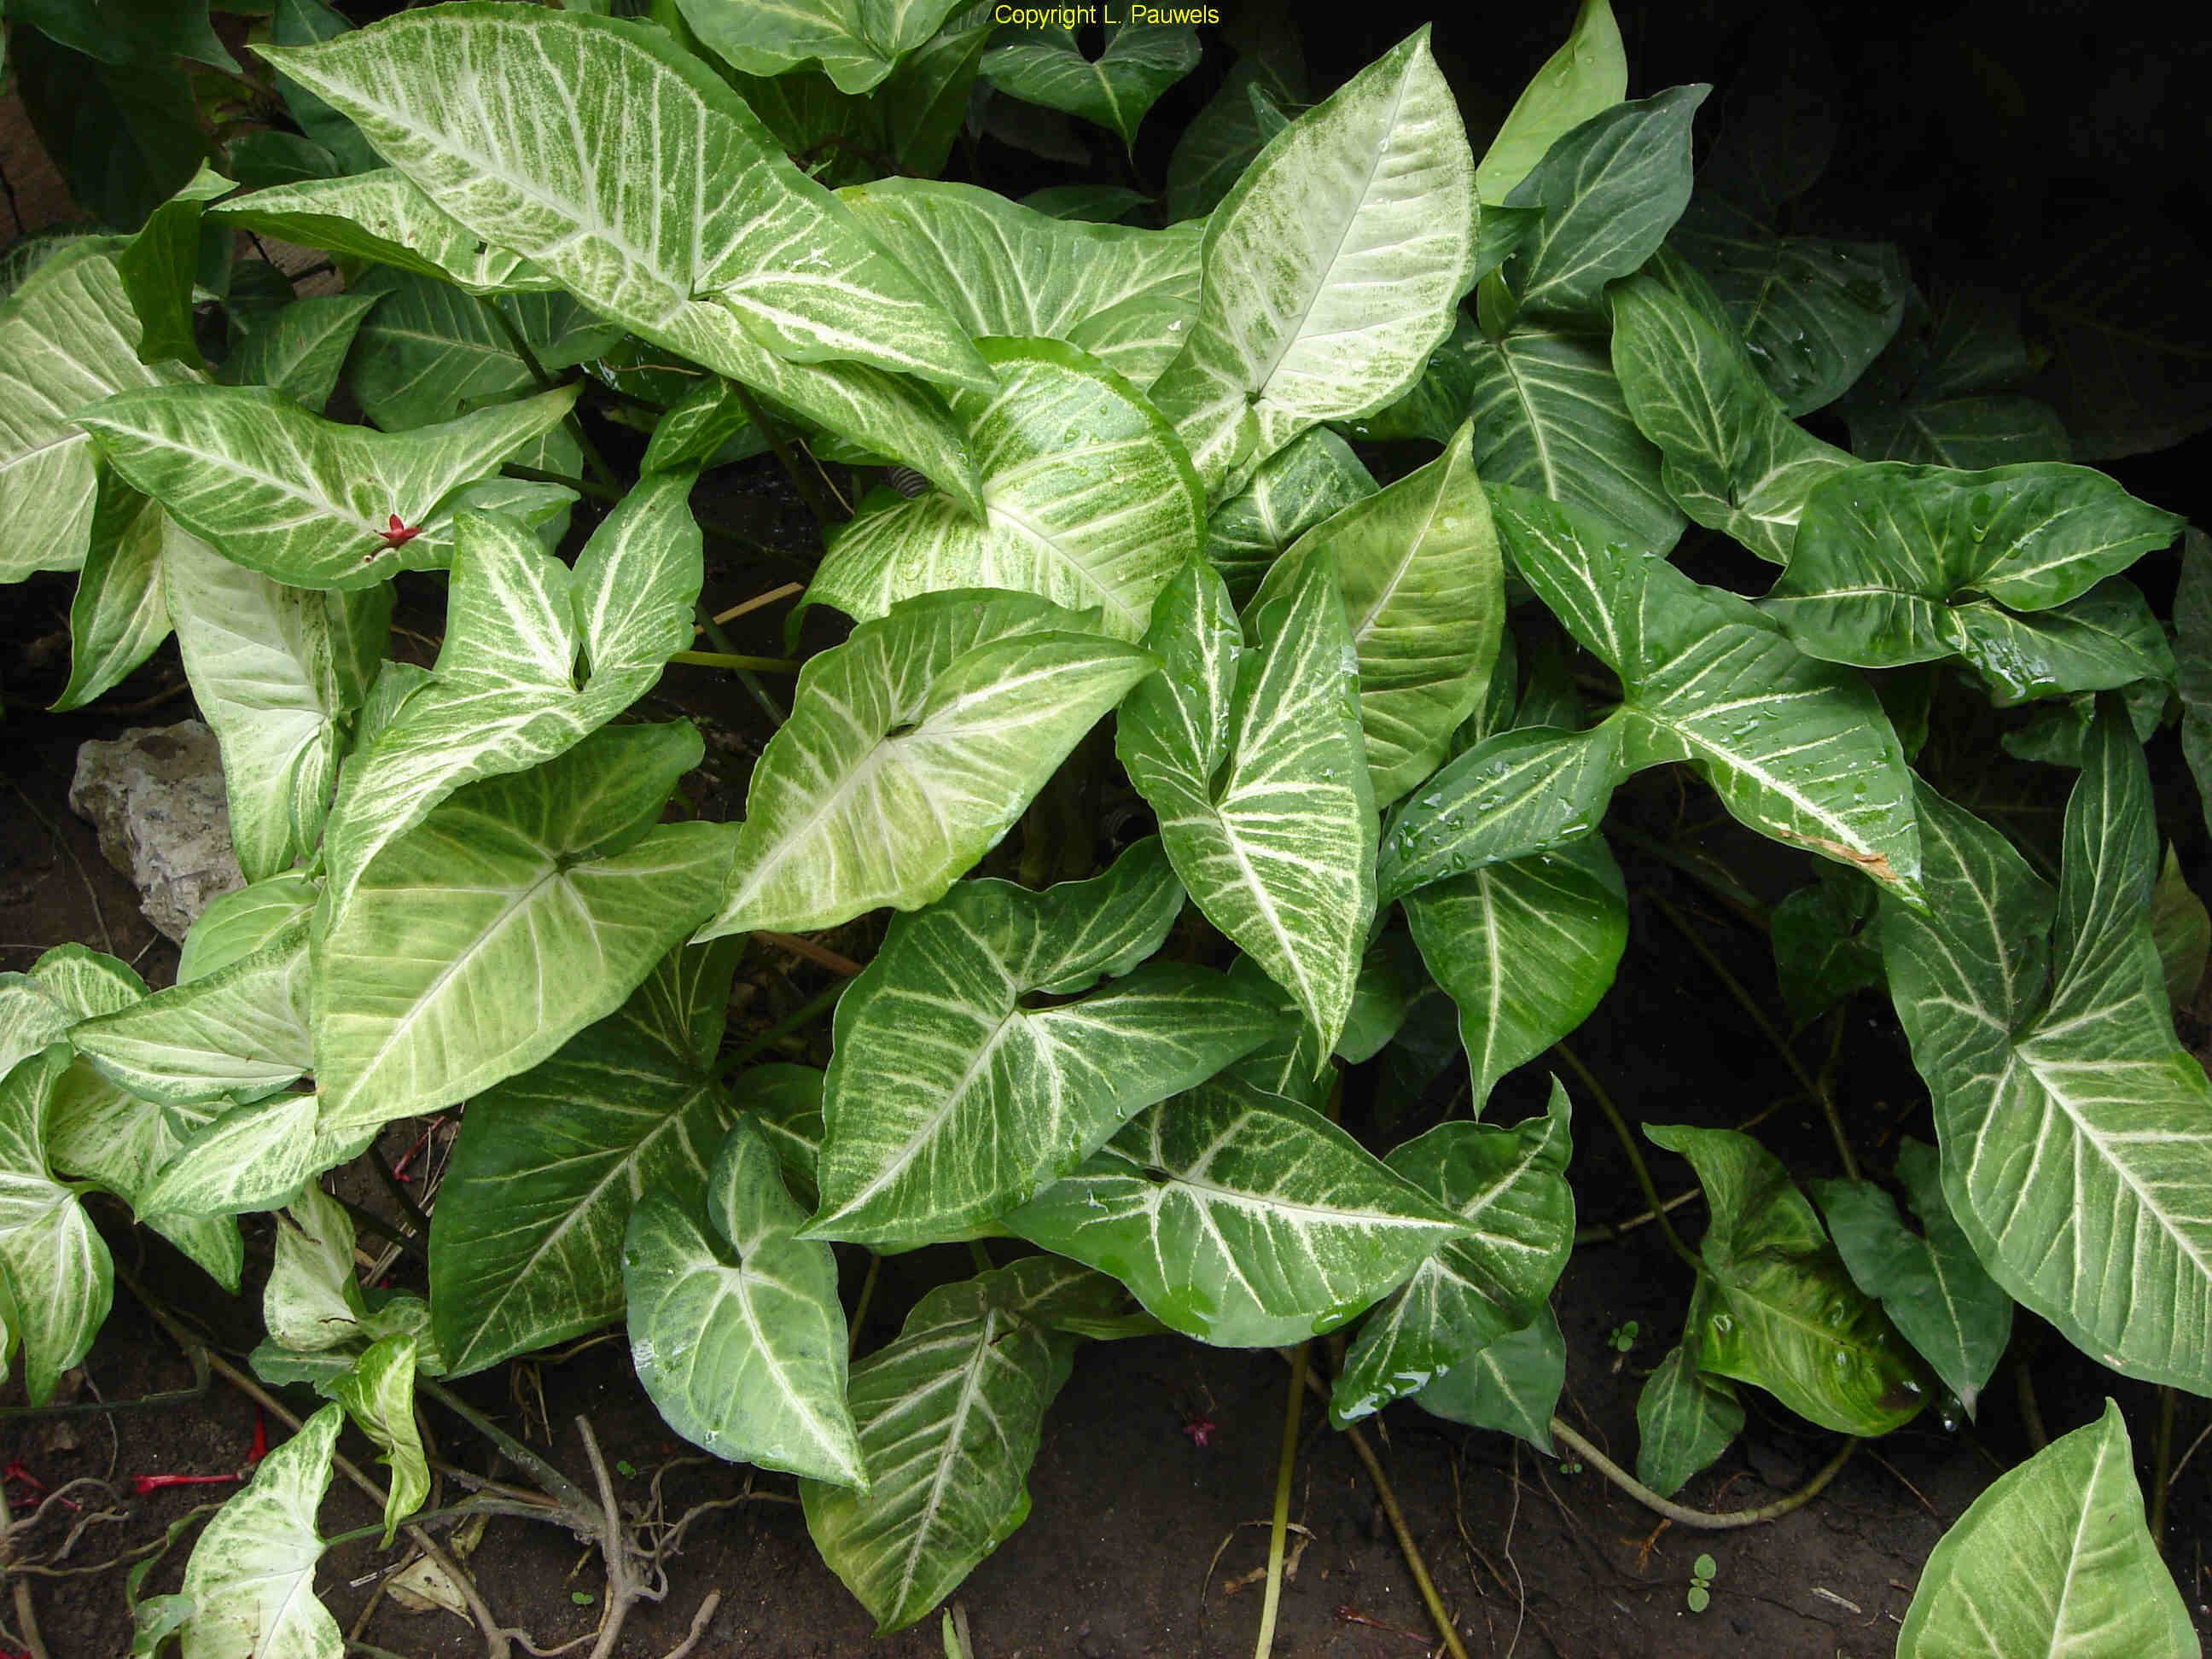 arrowhead vine syngonium podophyllum love these plants they grow as vines or make